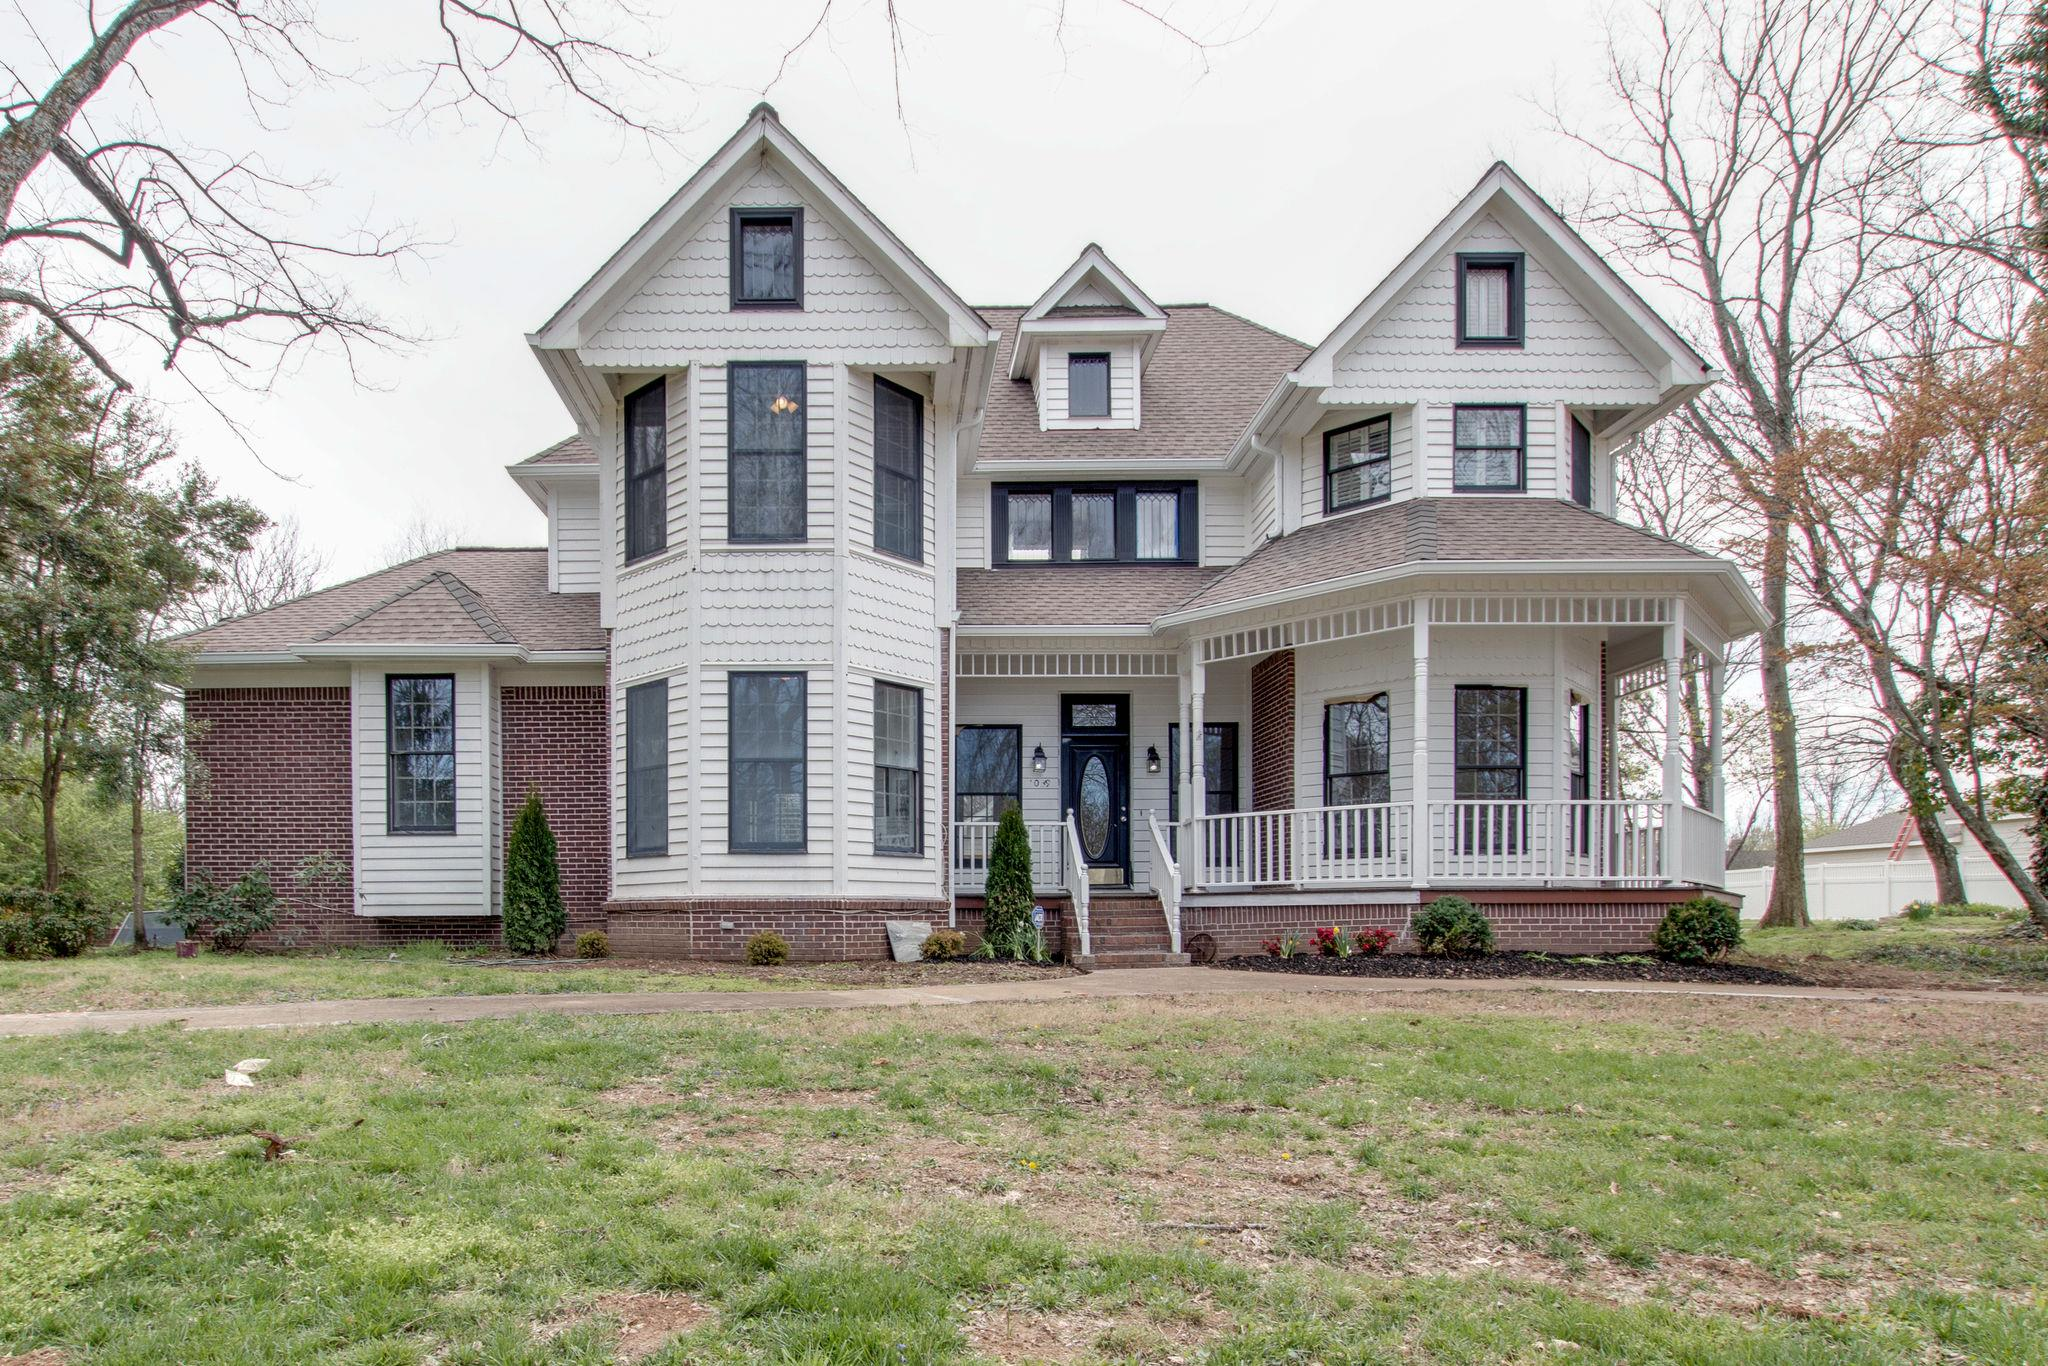 1039 Claremont Dr, Columbia, TN 38401 - Columbia, TN real estate listing